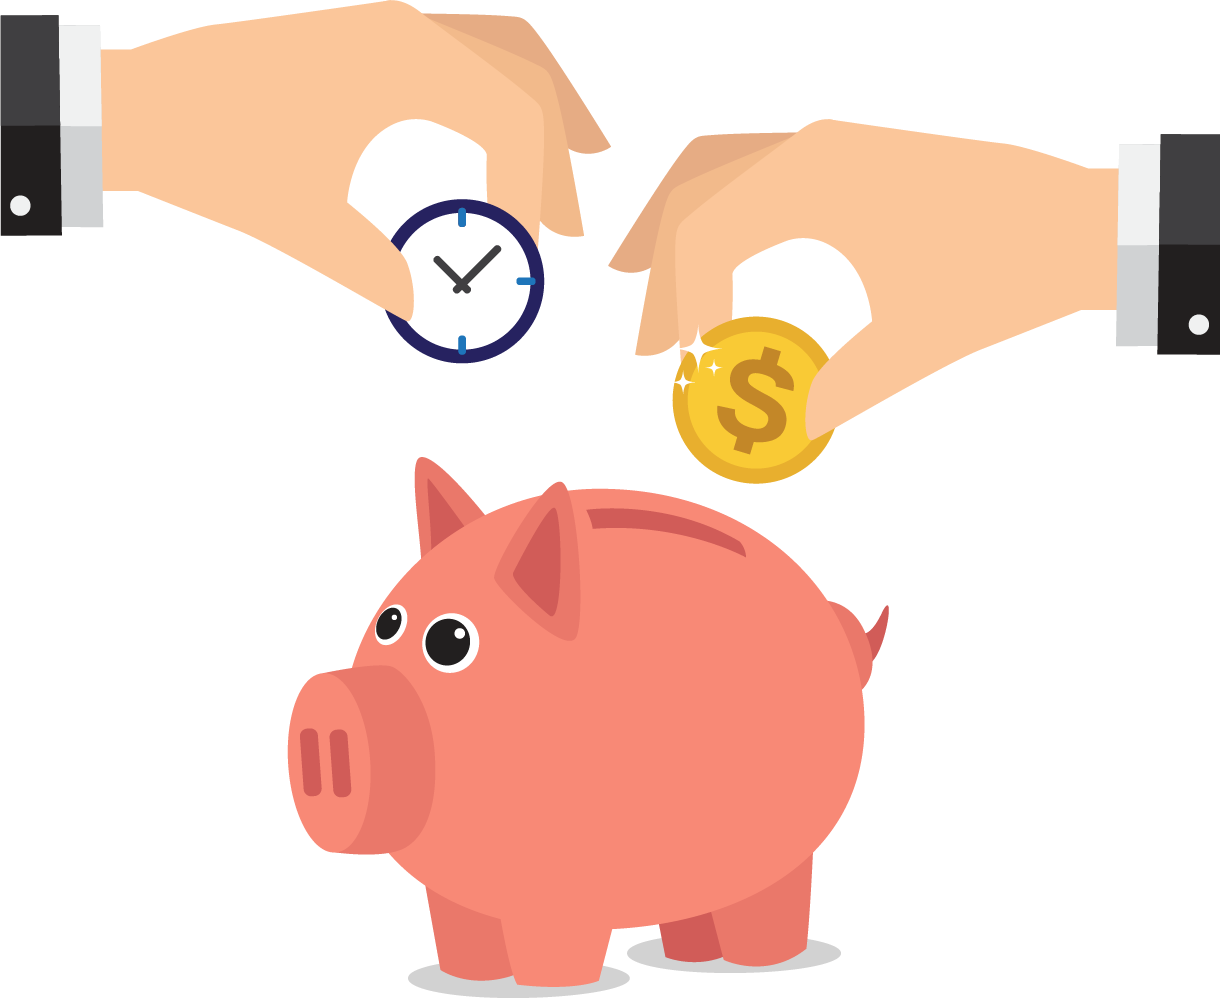 Saving money piggy bank clipart free library Piggy bank Saving Money - Pink piggy banks 1220*998 transprent Png ... free library